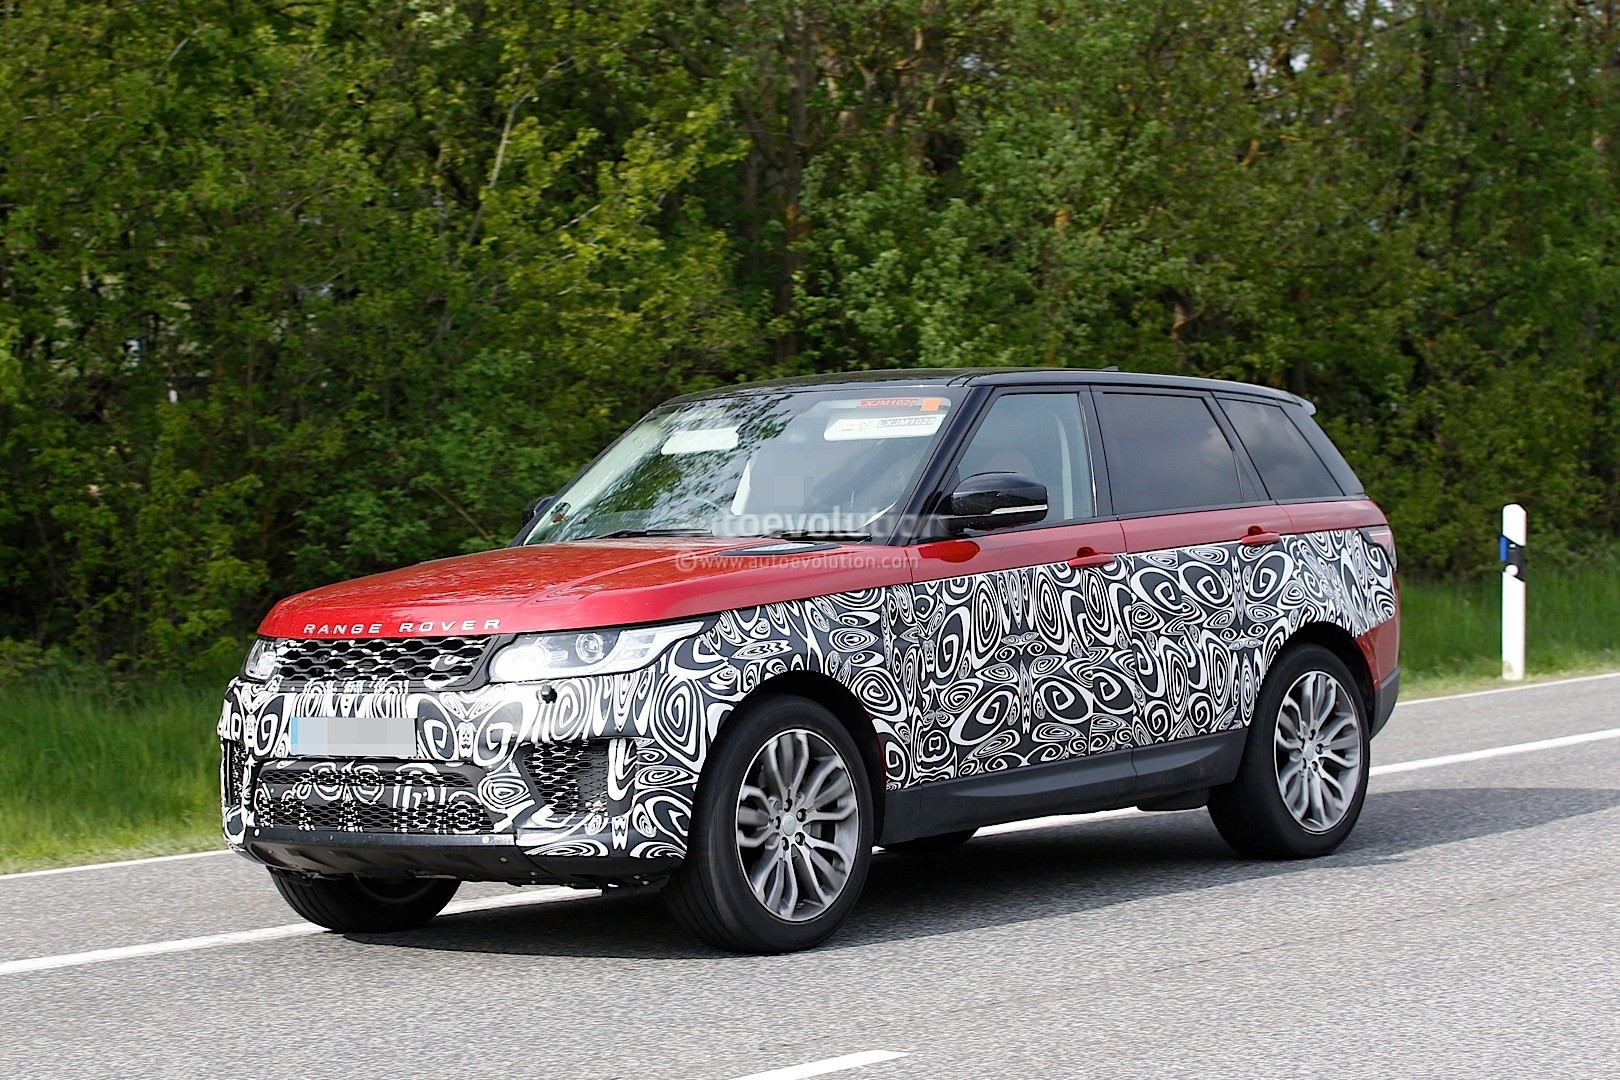 2017 range rover sport facelift spied inside out. Black Bedroom Furniture Sets. Home Design Ideas